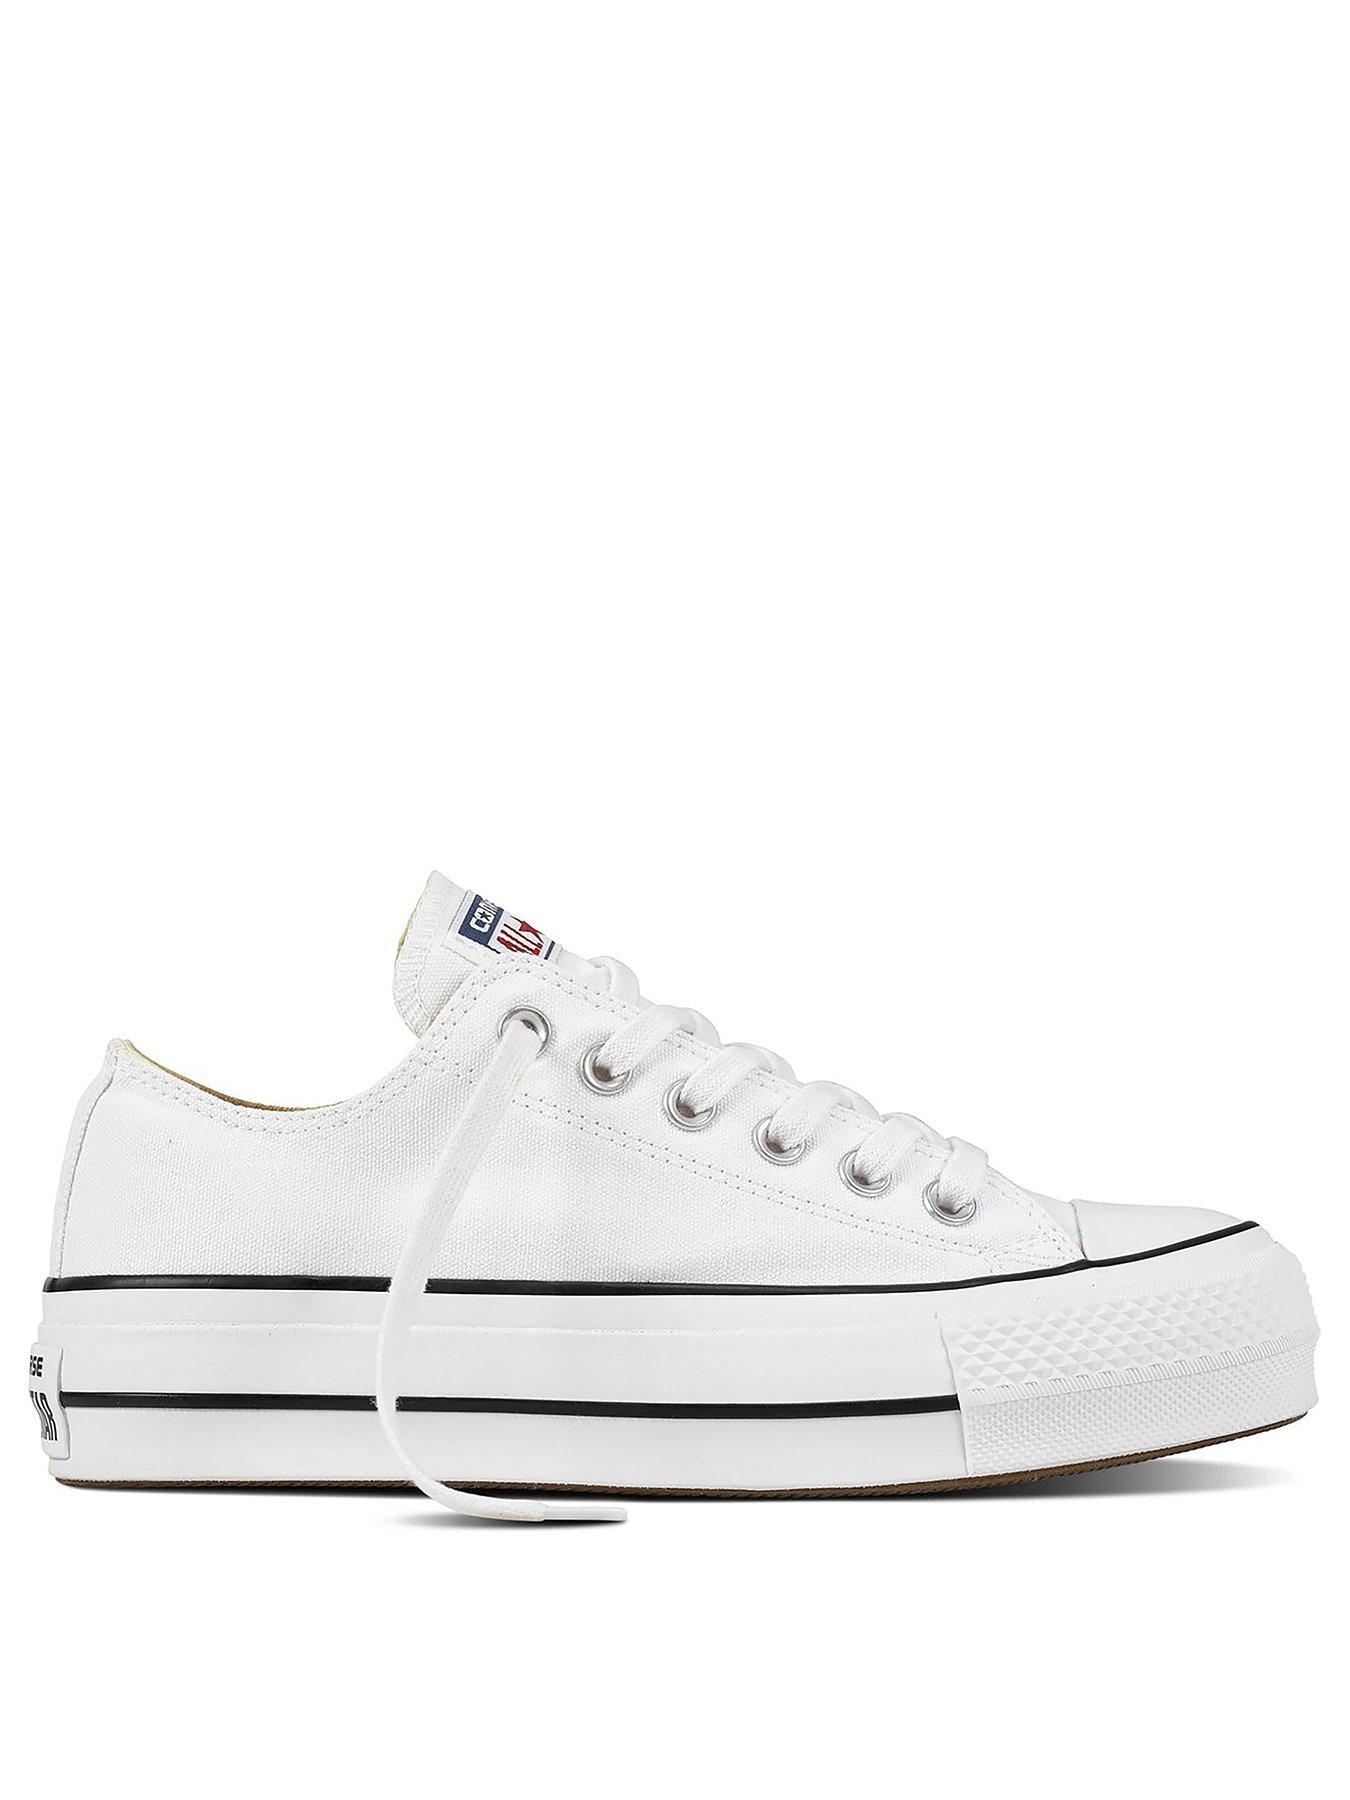 Converse Chuck Taylor All Star Lift Platform Ox